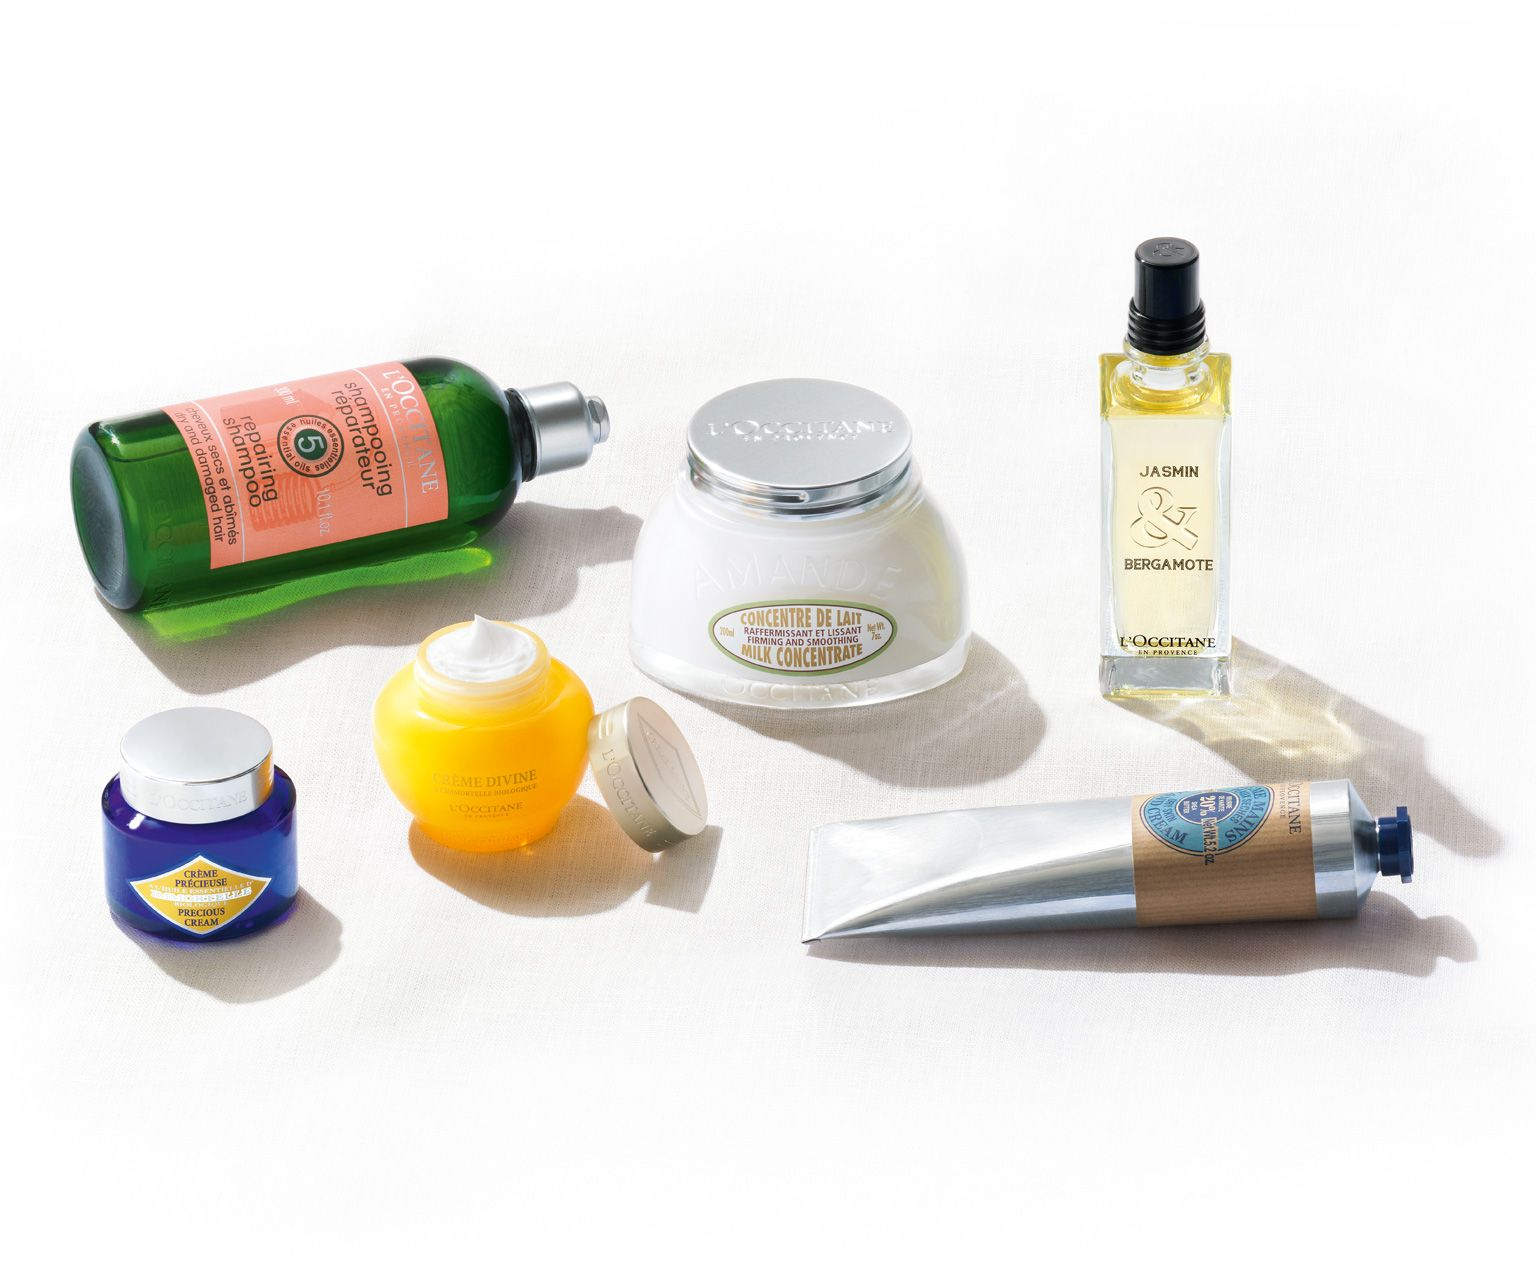 L Occitane TerraCycle Recycle Your Cosmetic Packaging For You So